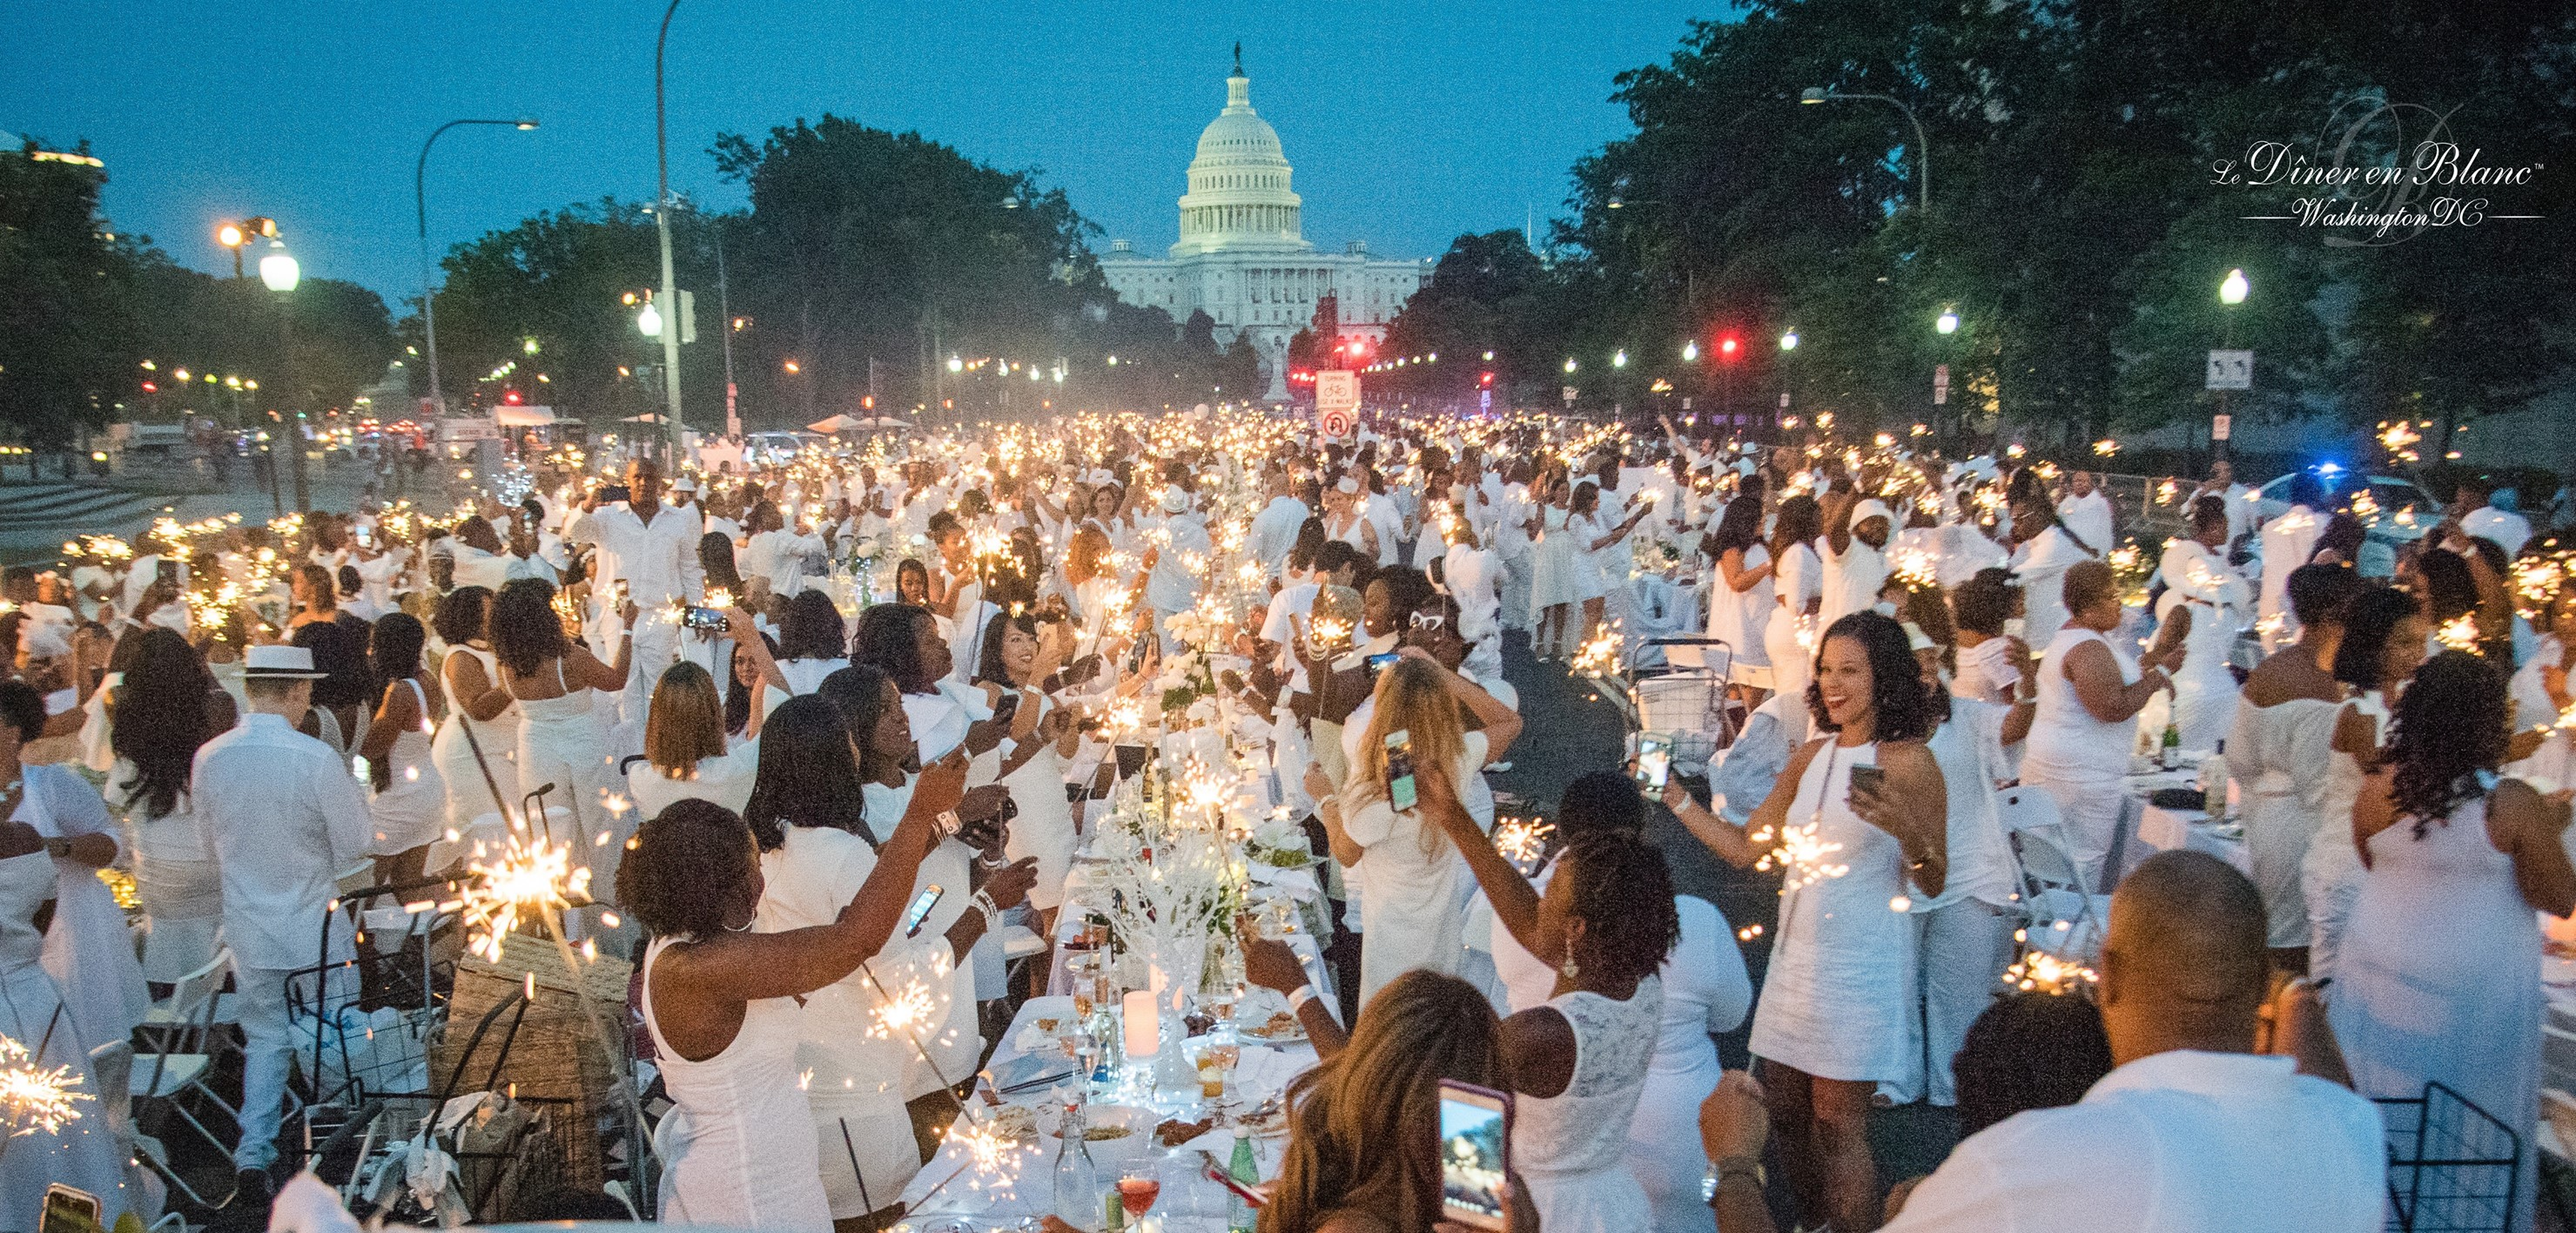 Diner en Blanc Washington DC